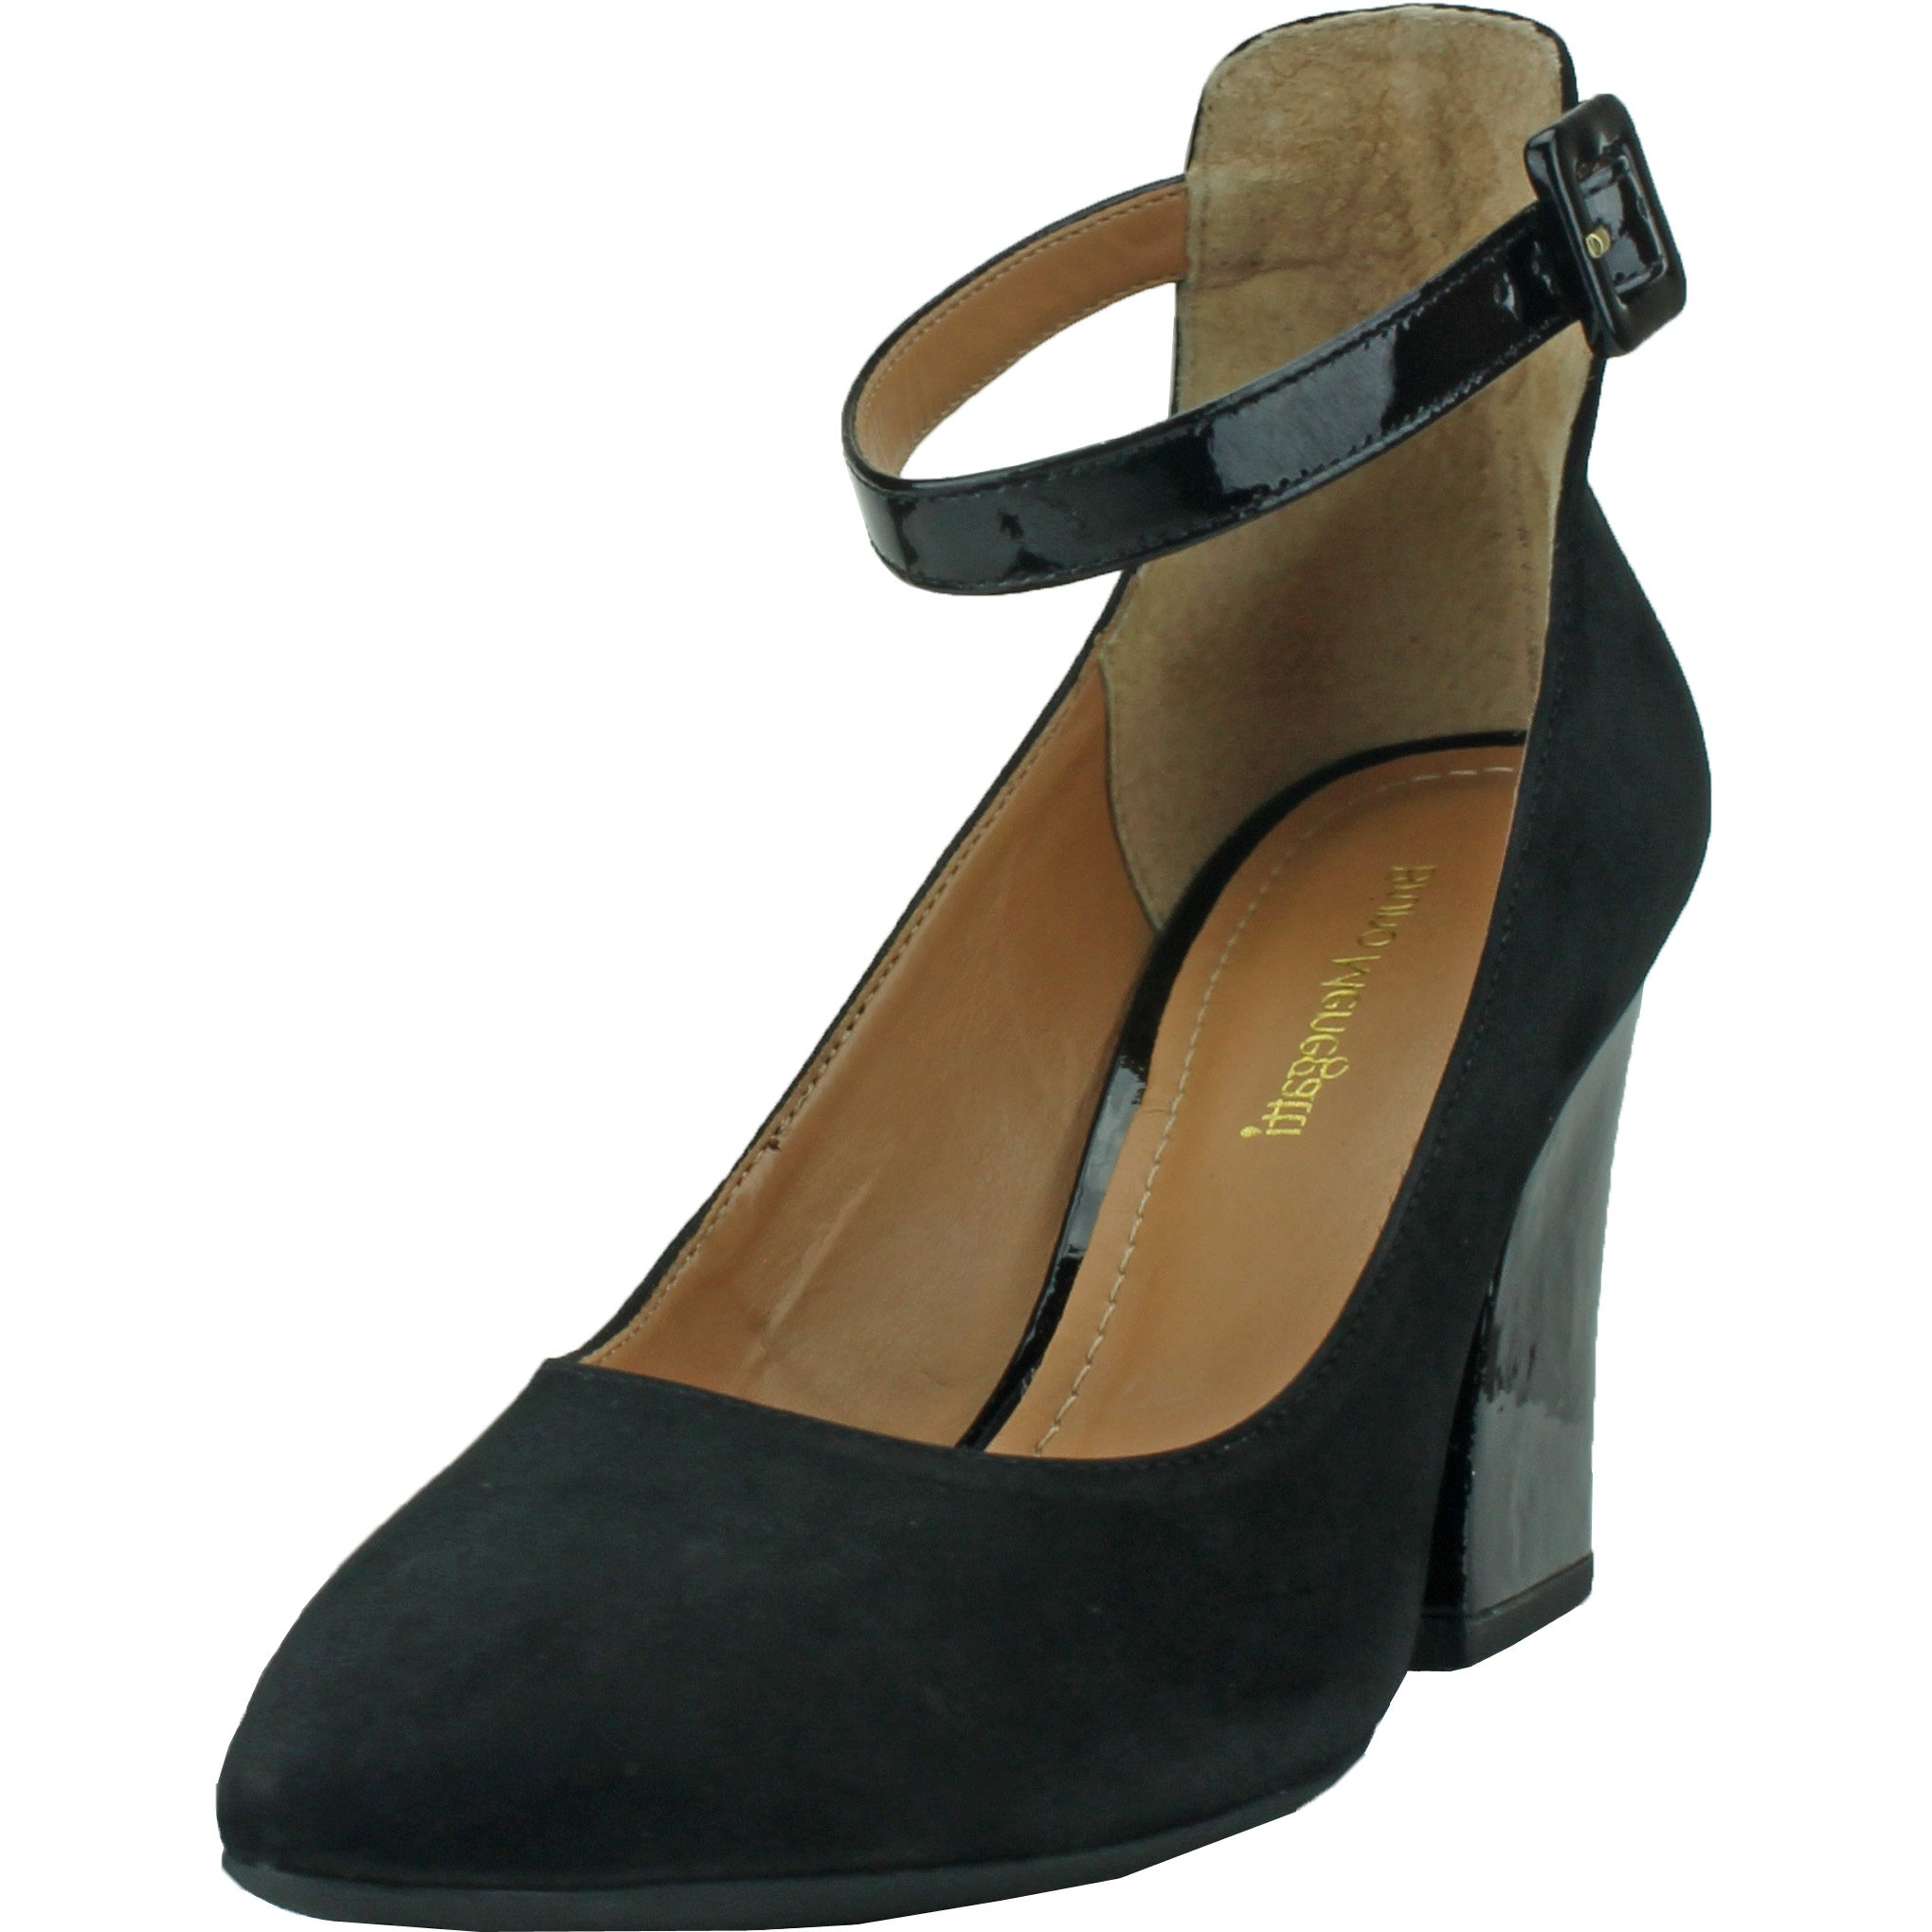 Bruno Menegatti Bernice-Dress Pump Leather Nubuck Black Patient Heel 8 US by Bruno Menegatti